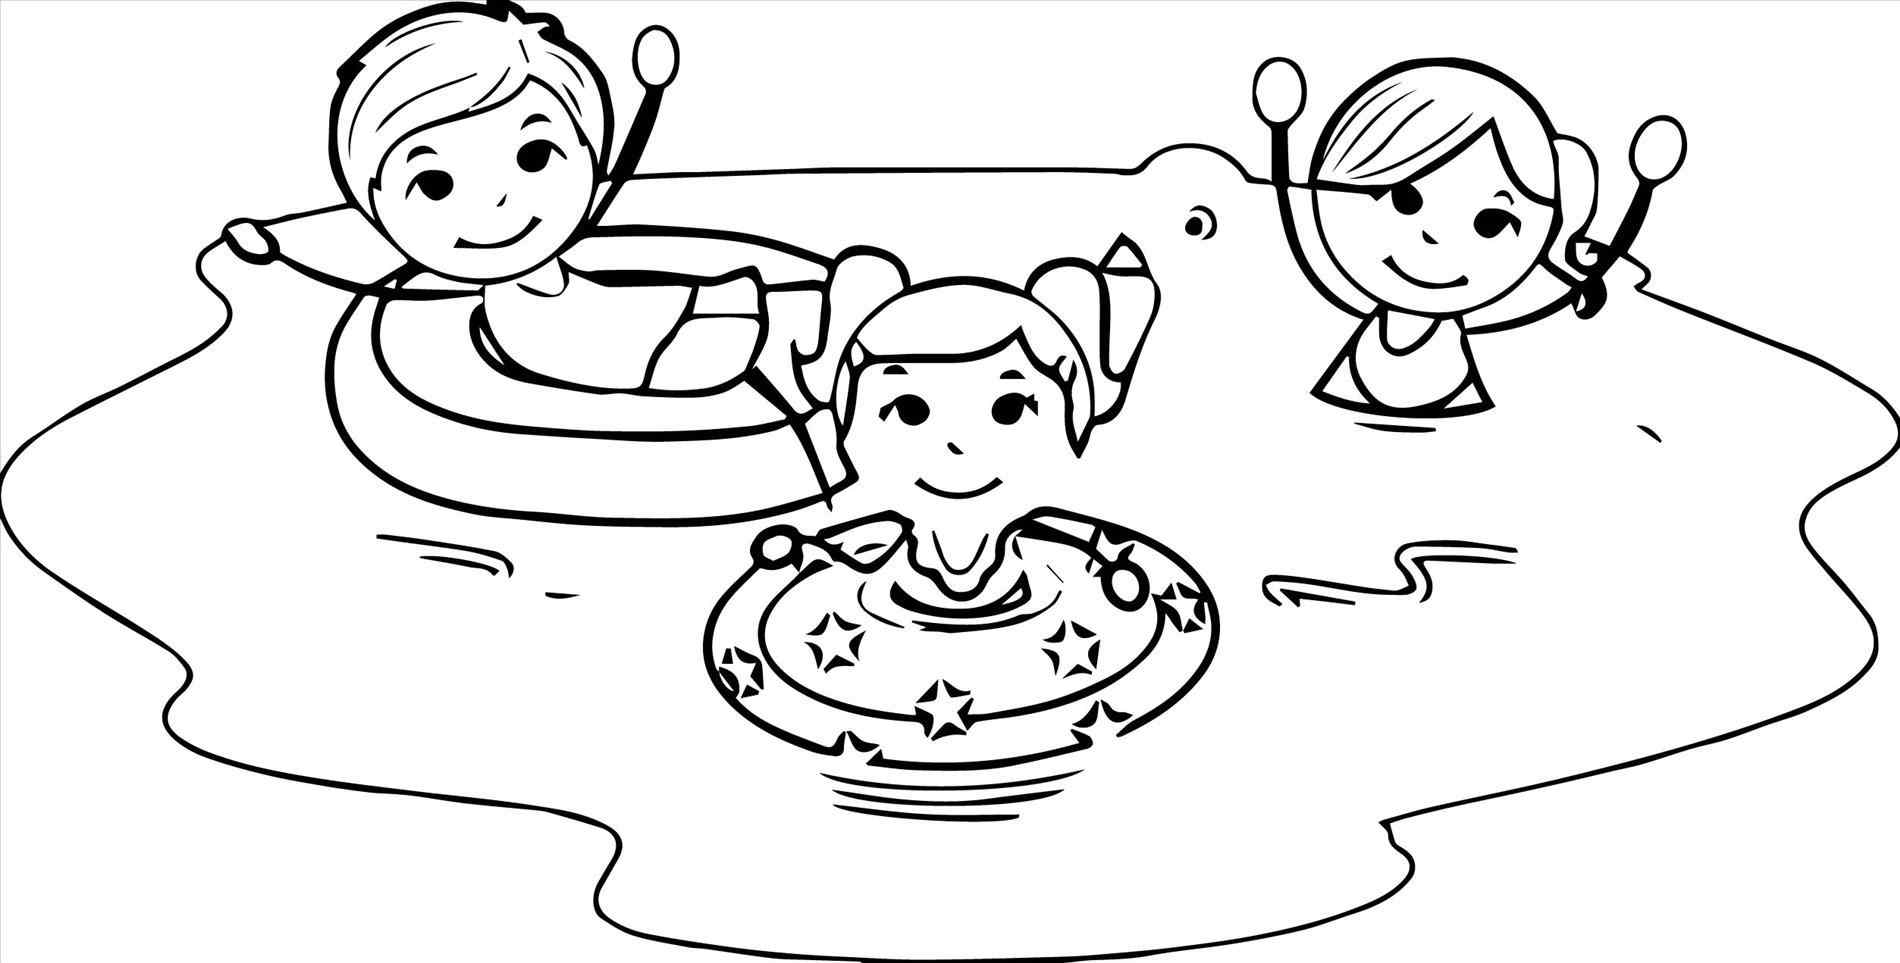 Vacation black and white clipart image black and white stock Vacation clipart black and white 3 » Clipart Station image black and white stock